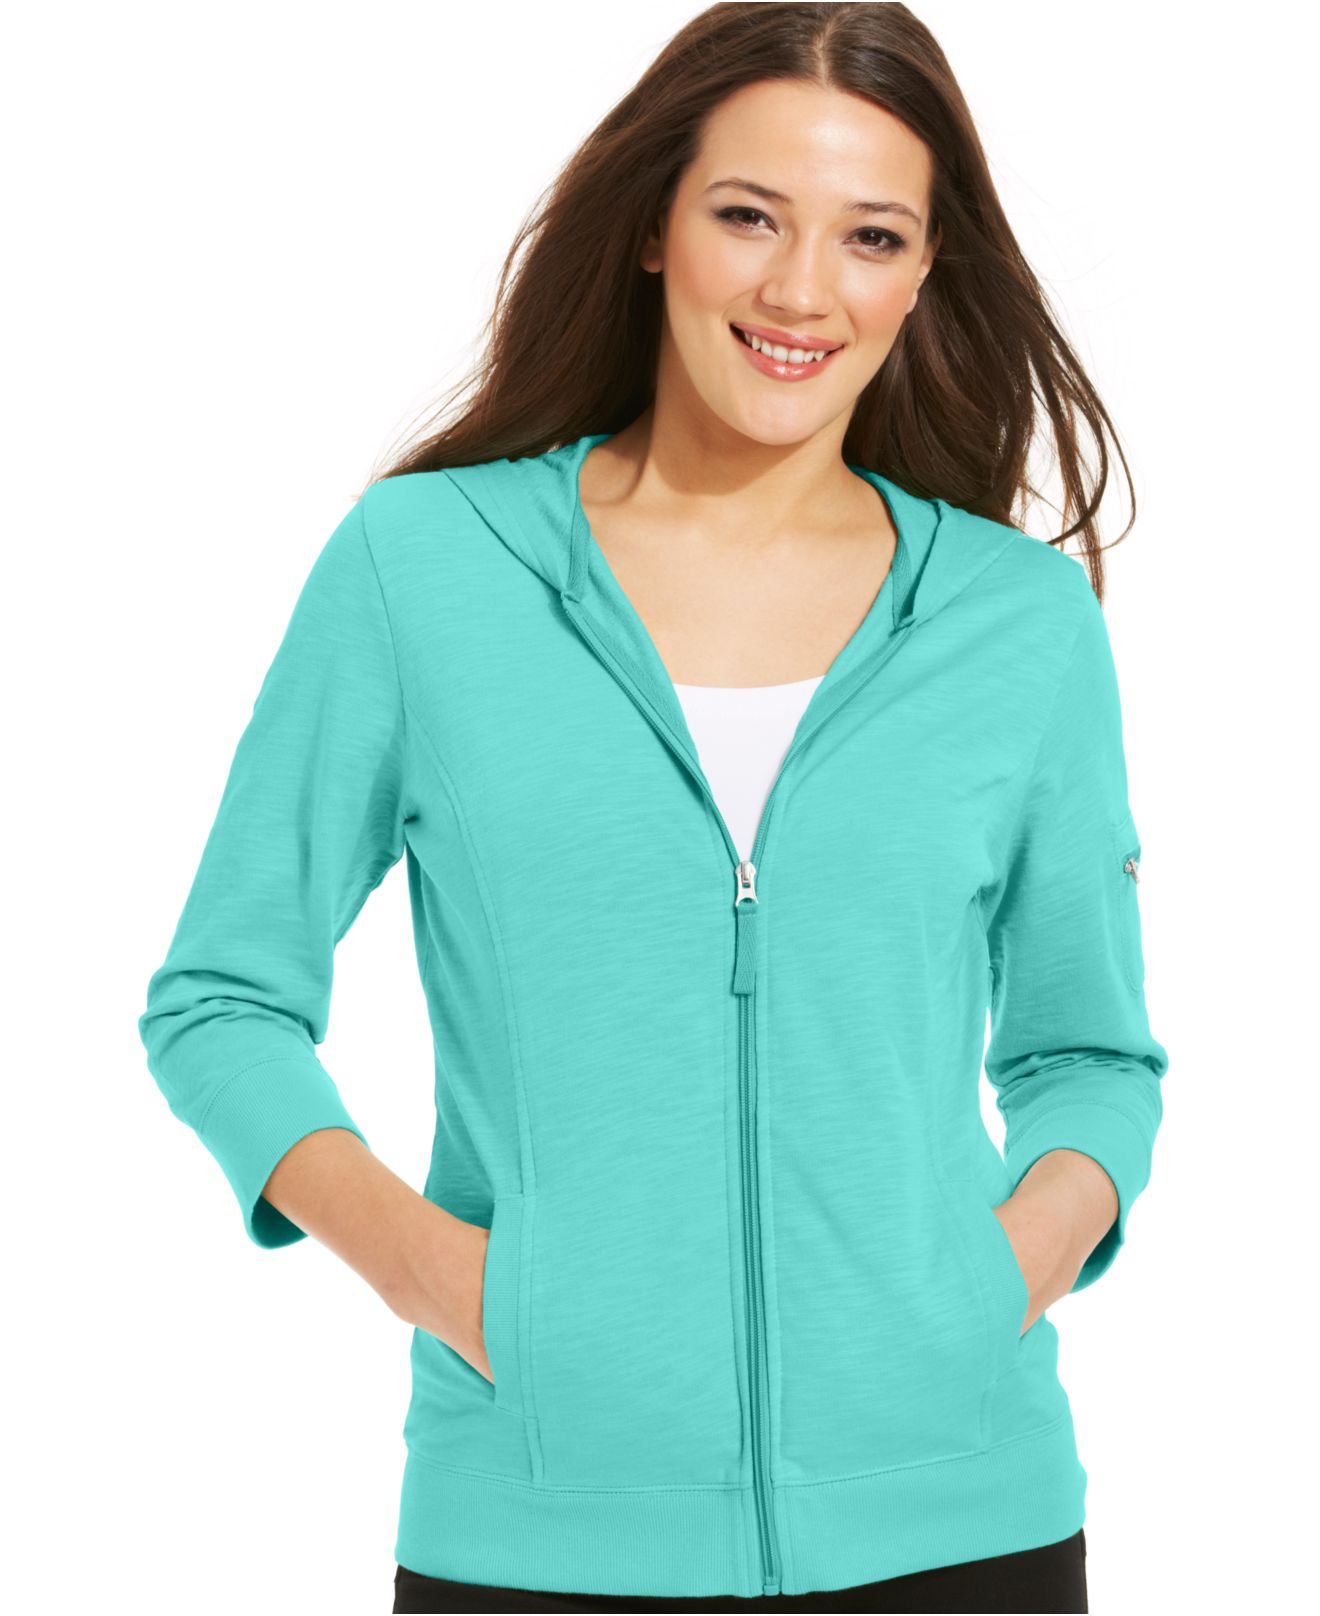 Shop for Women's Petite Clothing at REI - FREE SHIPPING With $50 minimum purchase. Top quality, great selection and expert advice you can trust. % Satisfaction Guarantee.